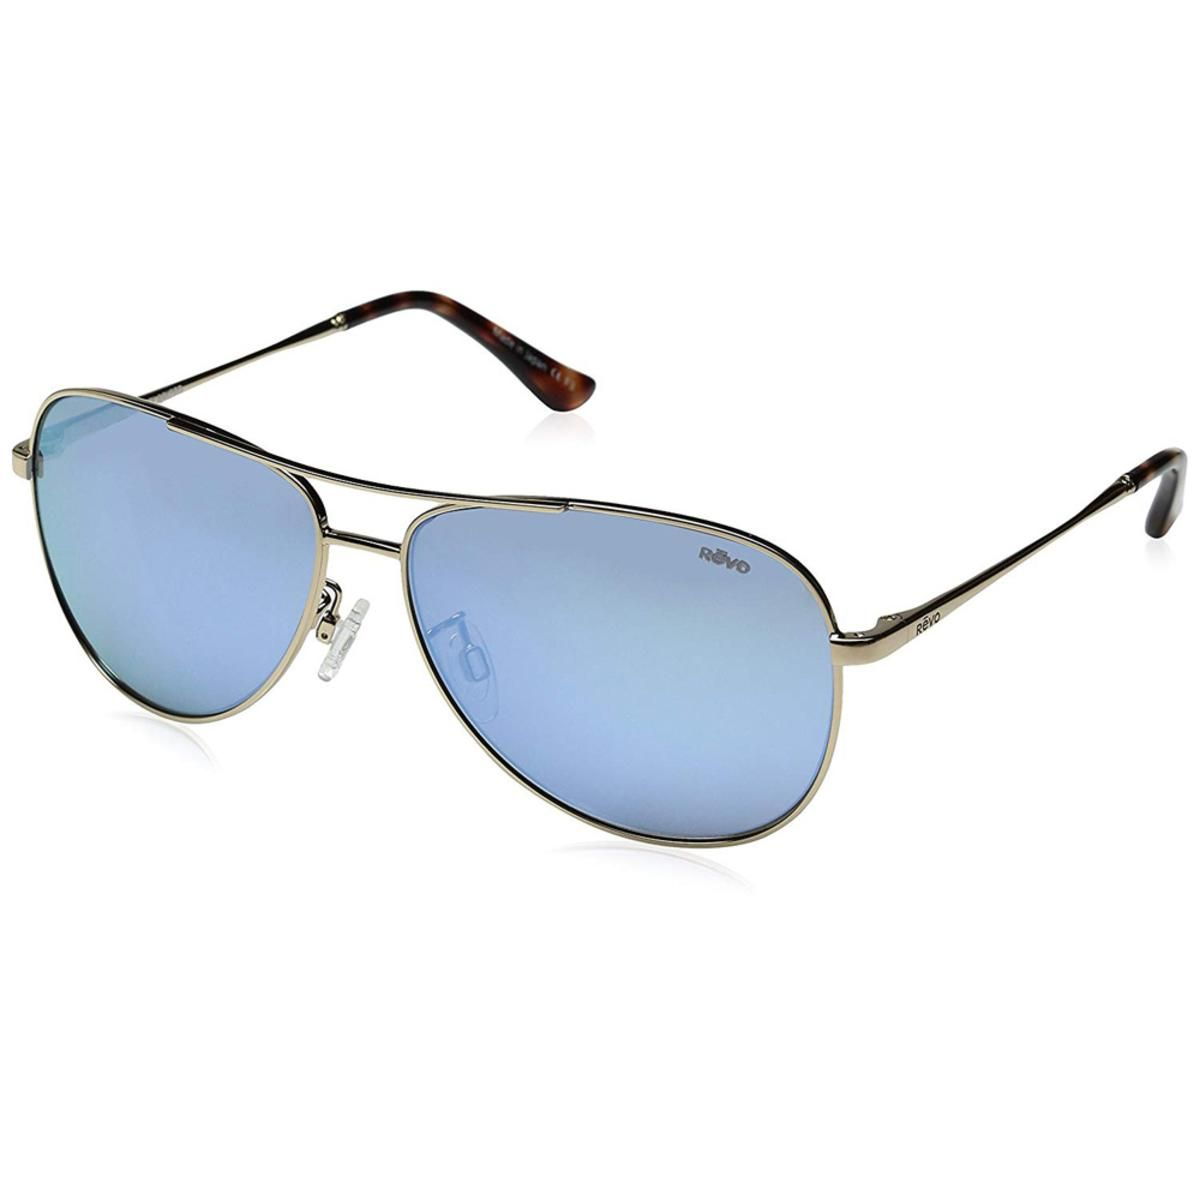 011f71b93 Revo Women's Relay Aviator Sunglasses Blue Water Lens with Gold Frame - The  Warming Store